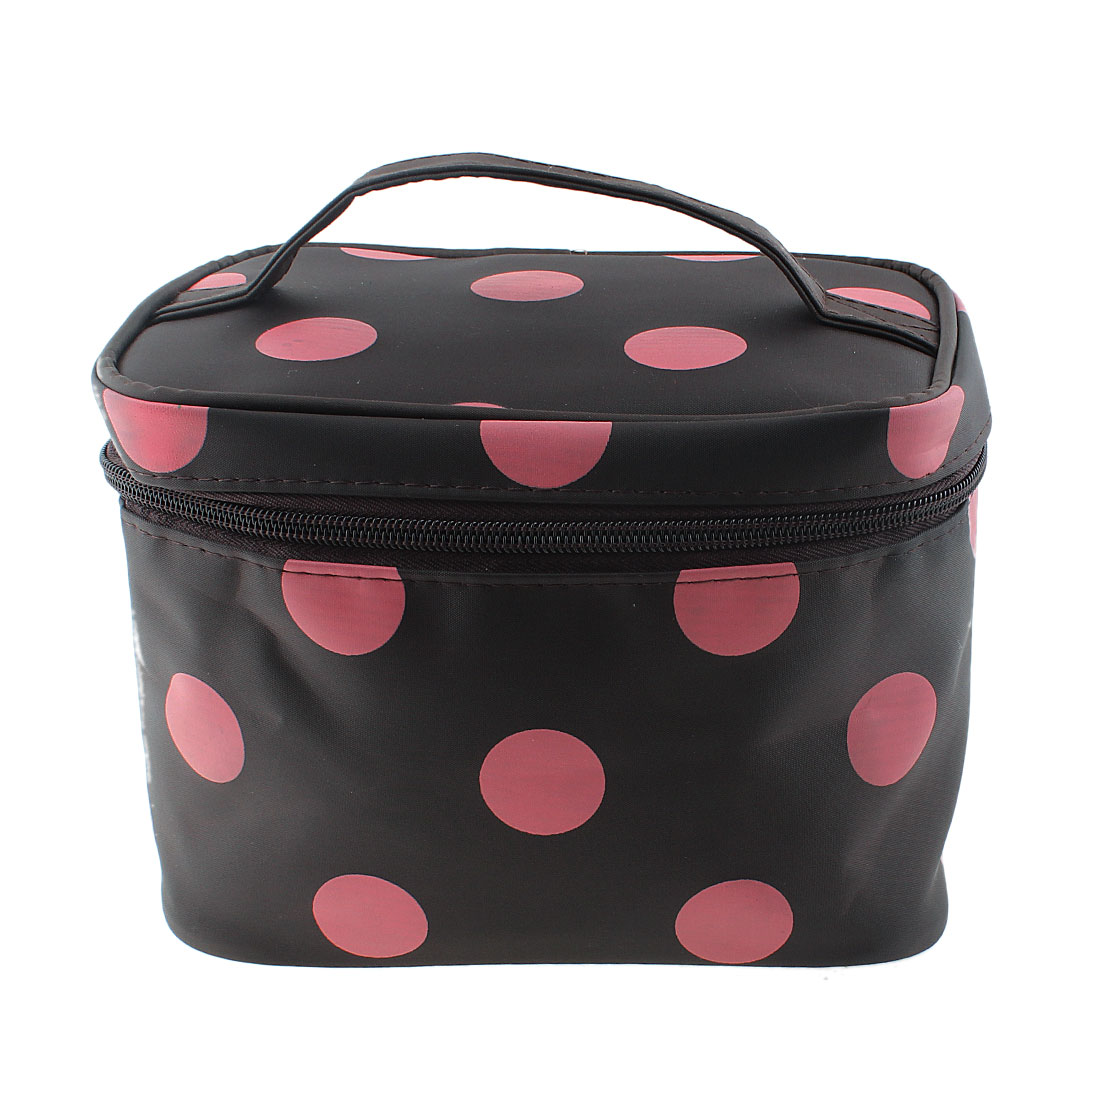 Dots Pattern Zippered Cosmetic Makeup Storage Case Organizer Bag Pouch Brown